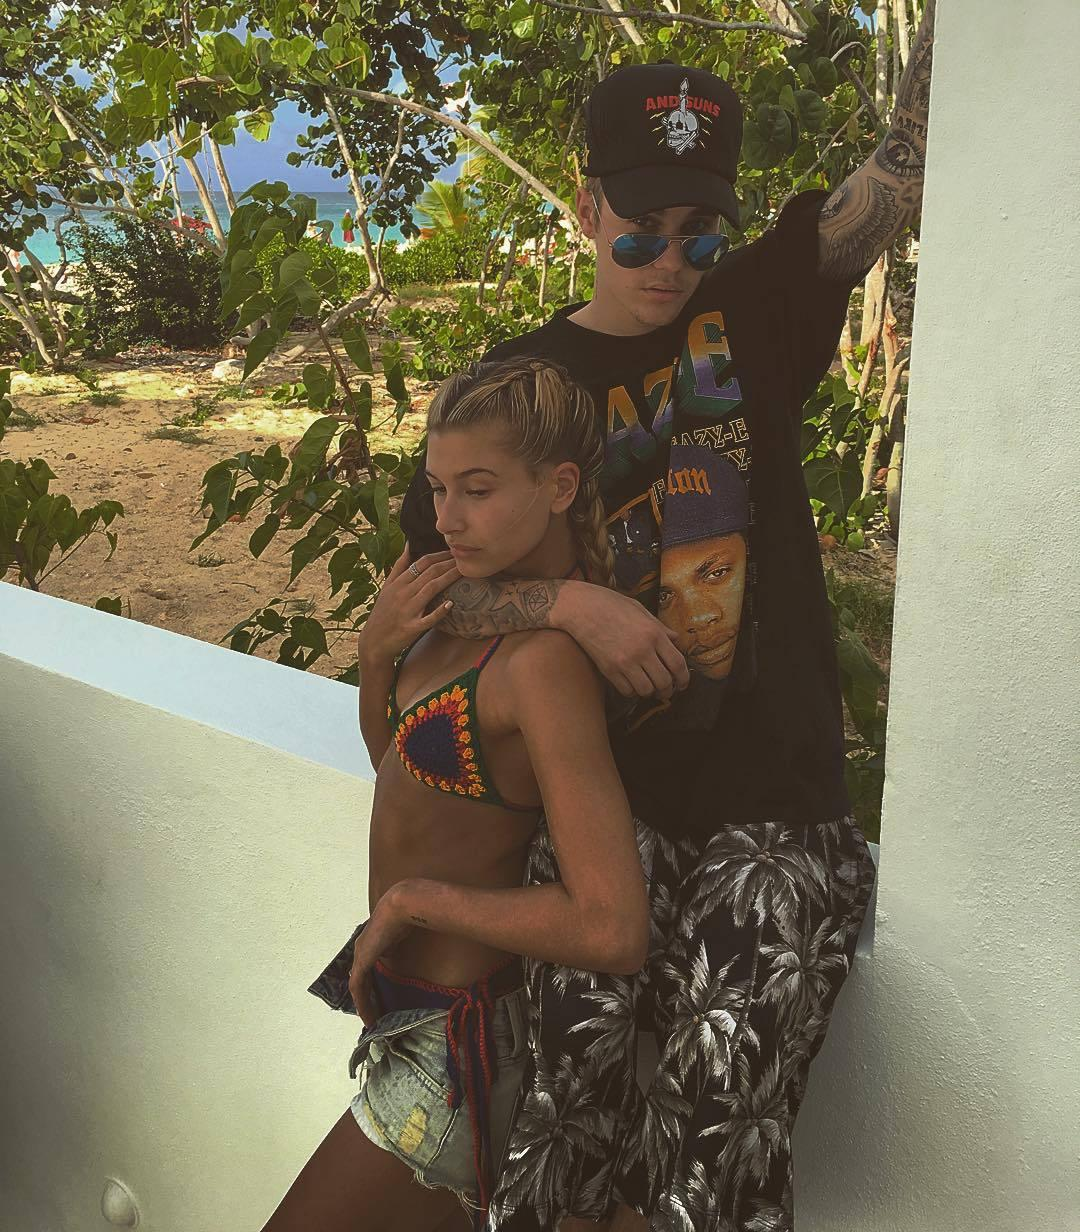 Justin Bieber Kicked Out Of Tulum Mexico Ruins For Bad Behavior Video